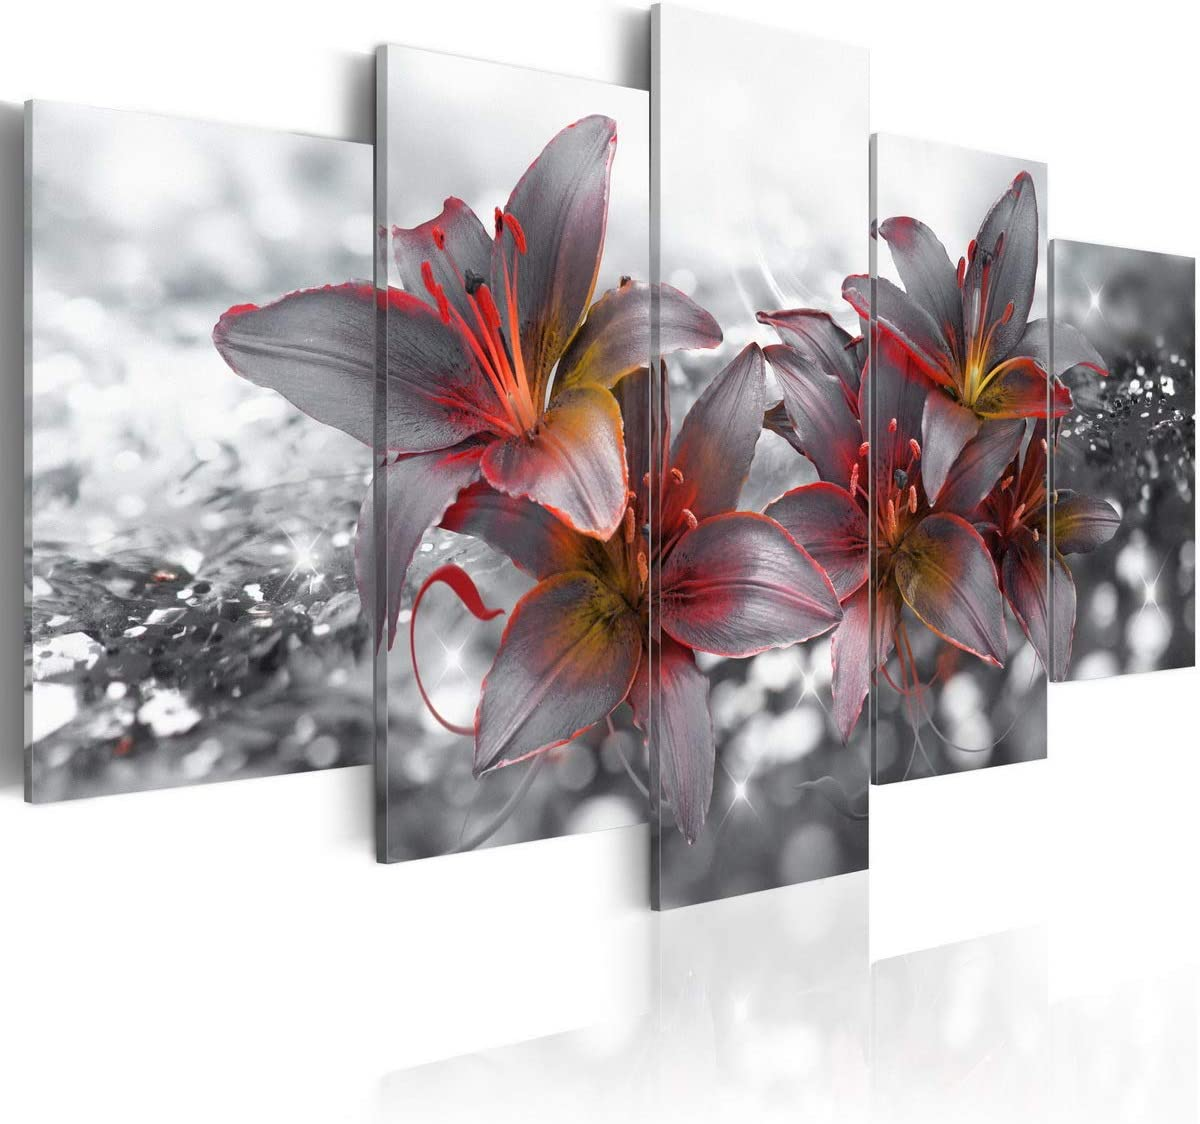 Canvas Print Flower Modern Wall Art Lily Picture Framed Red Black Gray 5pcs Artwork Decor for Bedroom Kiss of Fire Painting Ready to Hang 20x40